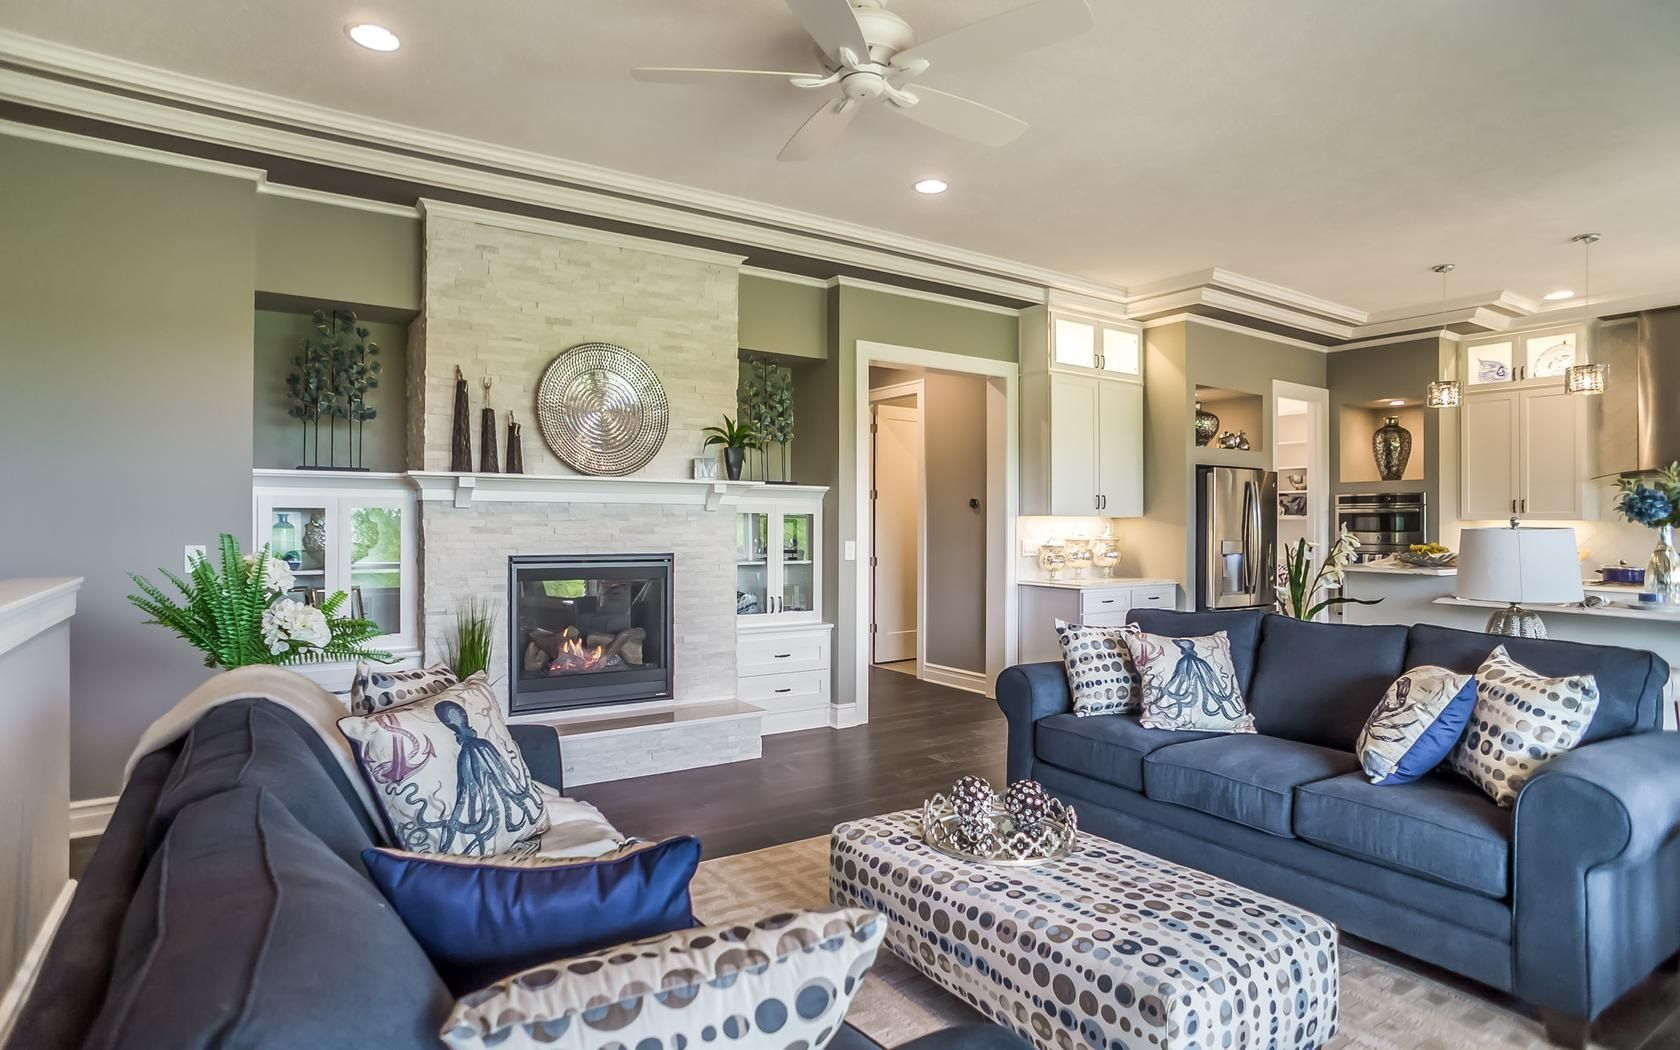 Silverstone Estates by Mayberry Homes:Silverstone Estates by Mayberry Homes